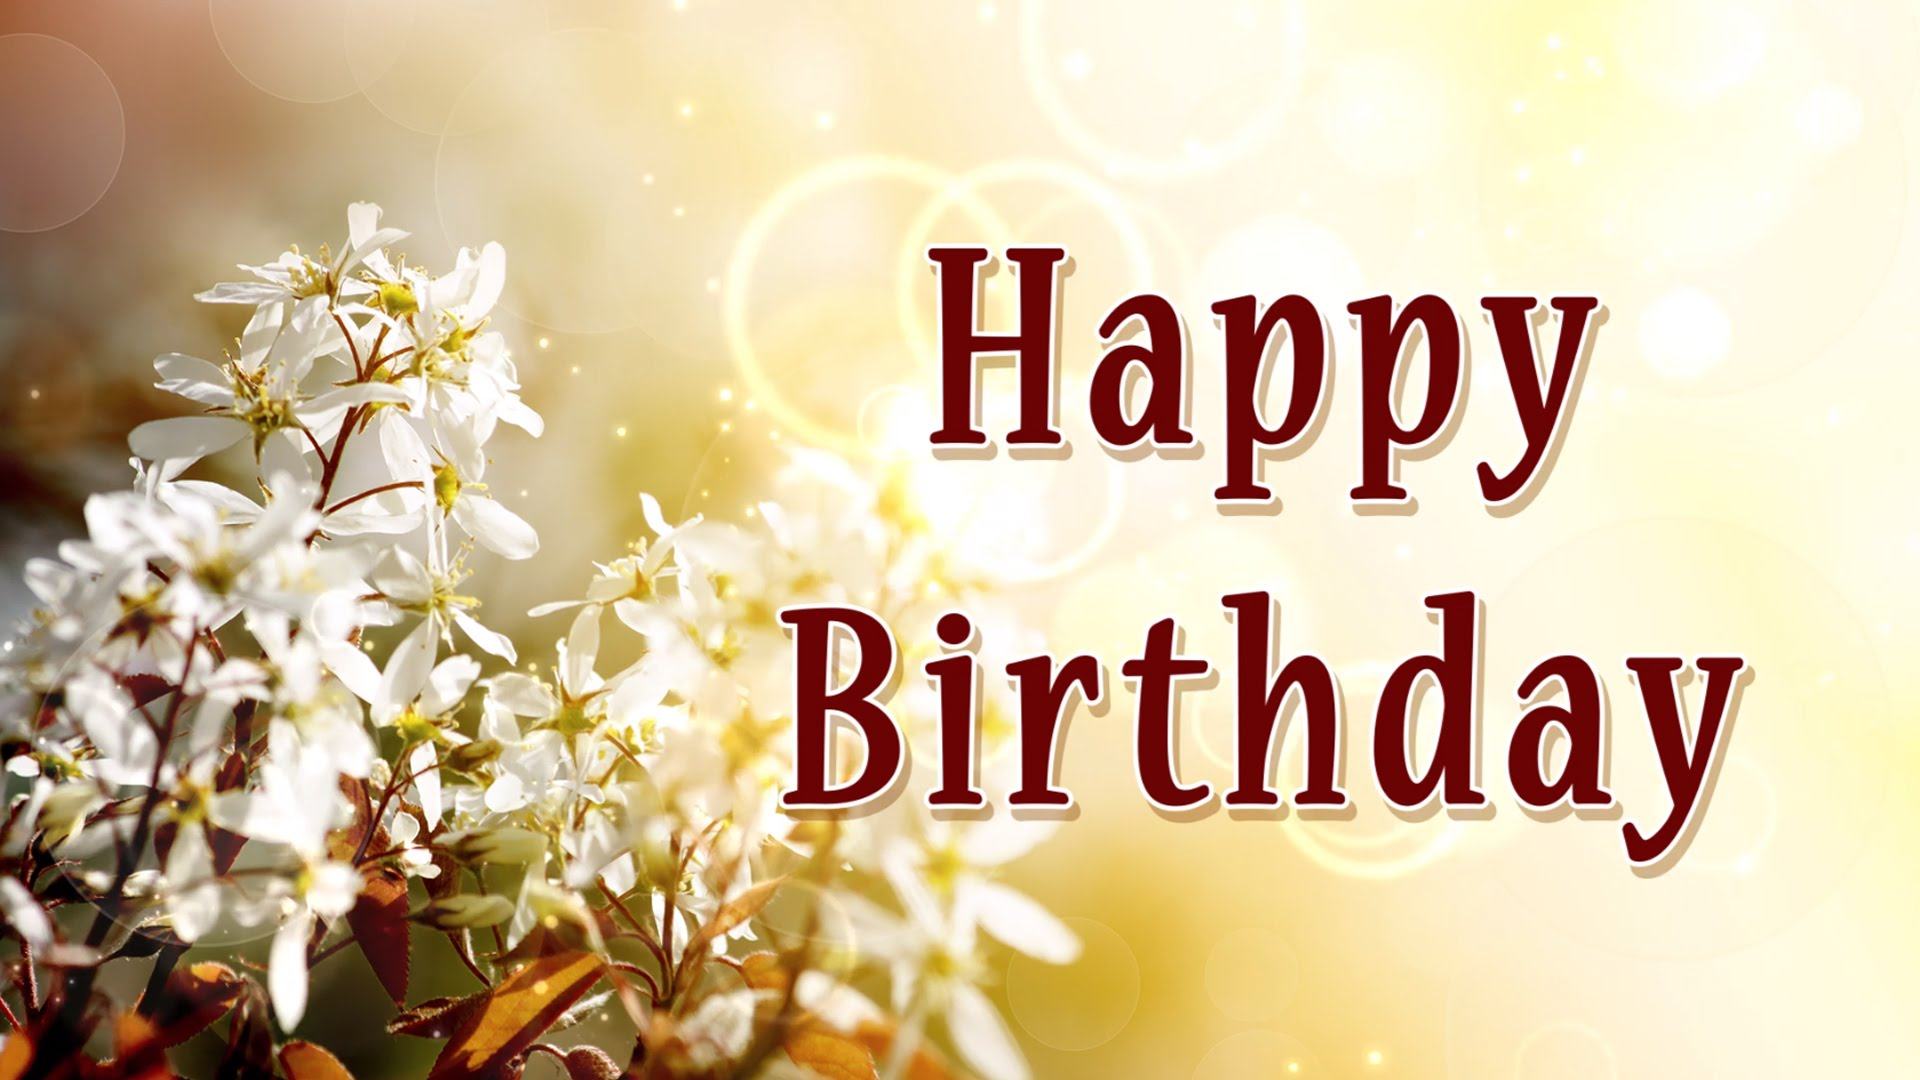 Happy Birthday Image With Beautiful White Flower Happy Birthday Flowers Background 678759 Hd Wallpaper Backgrounds Download